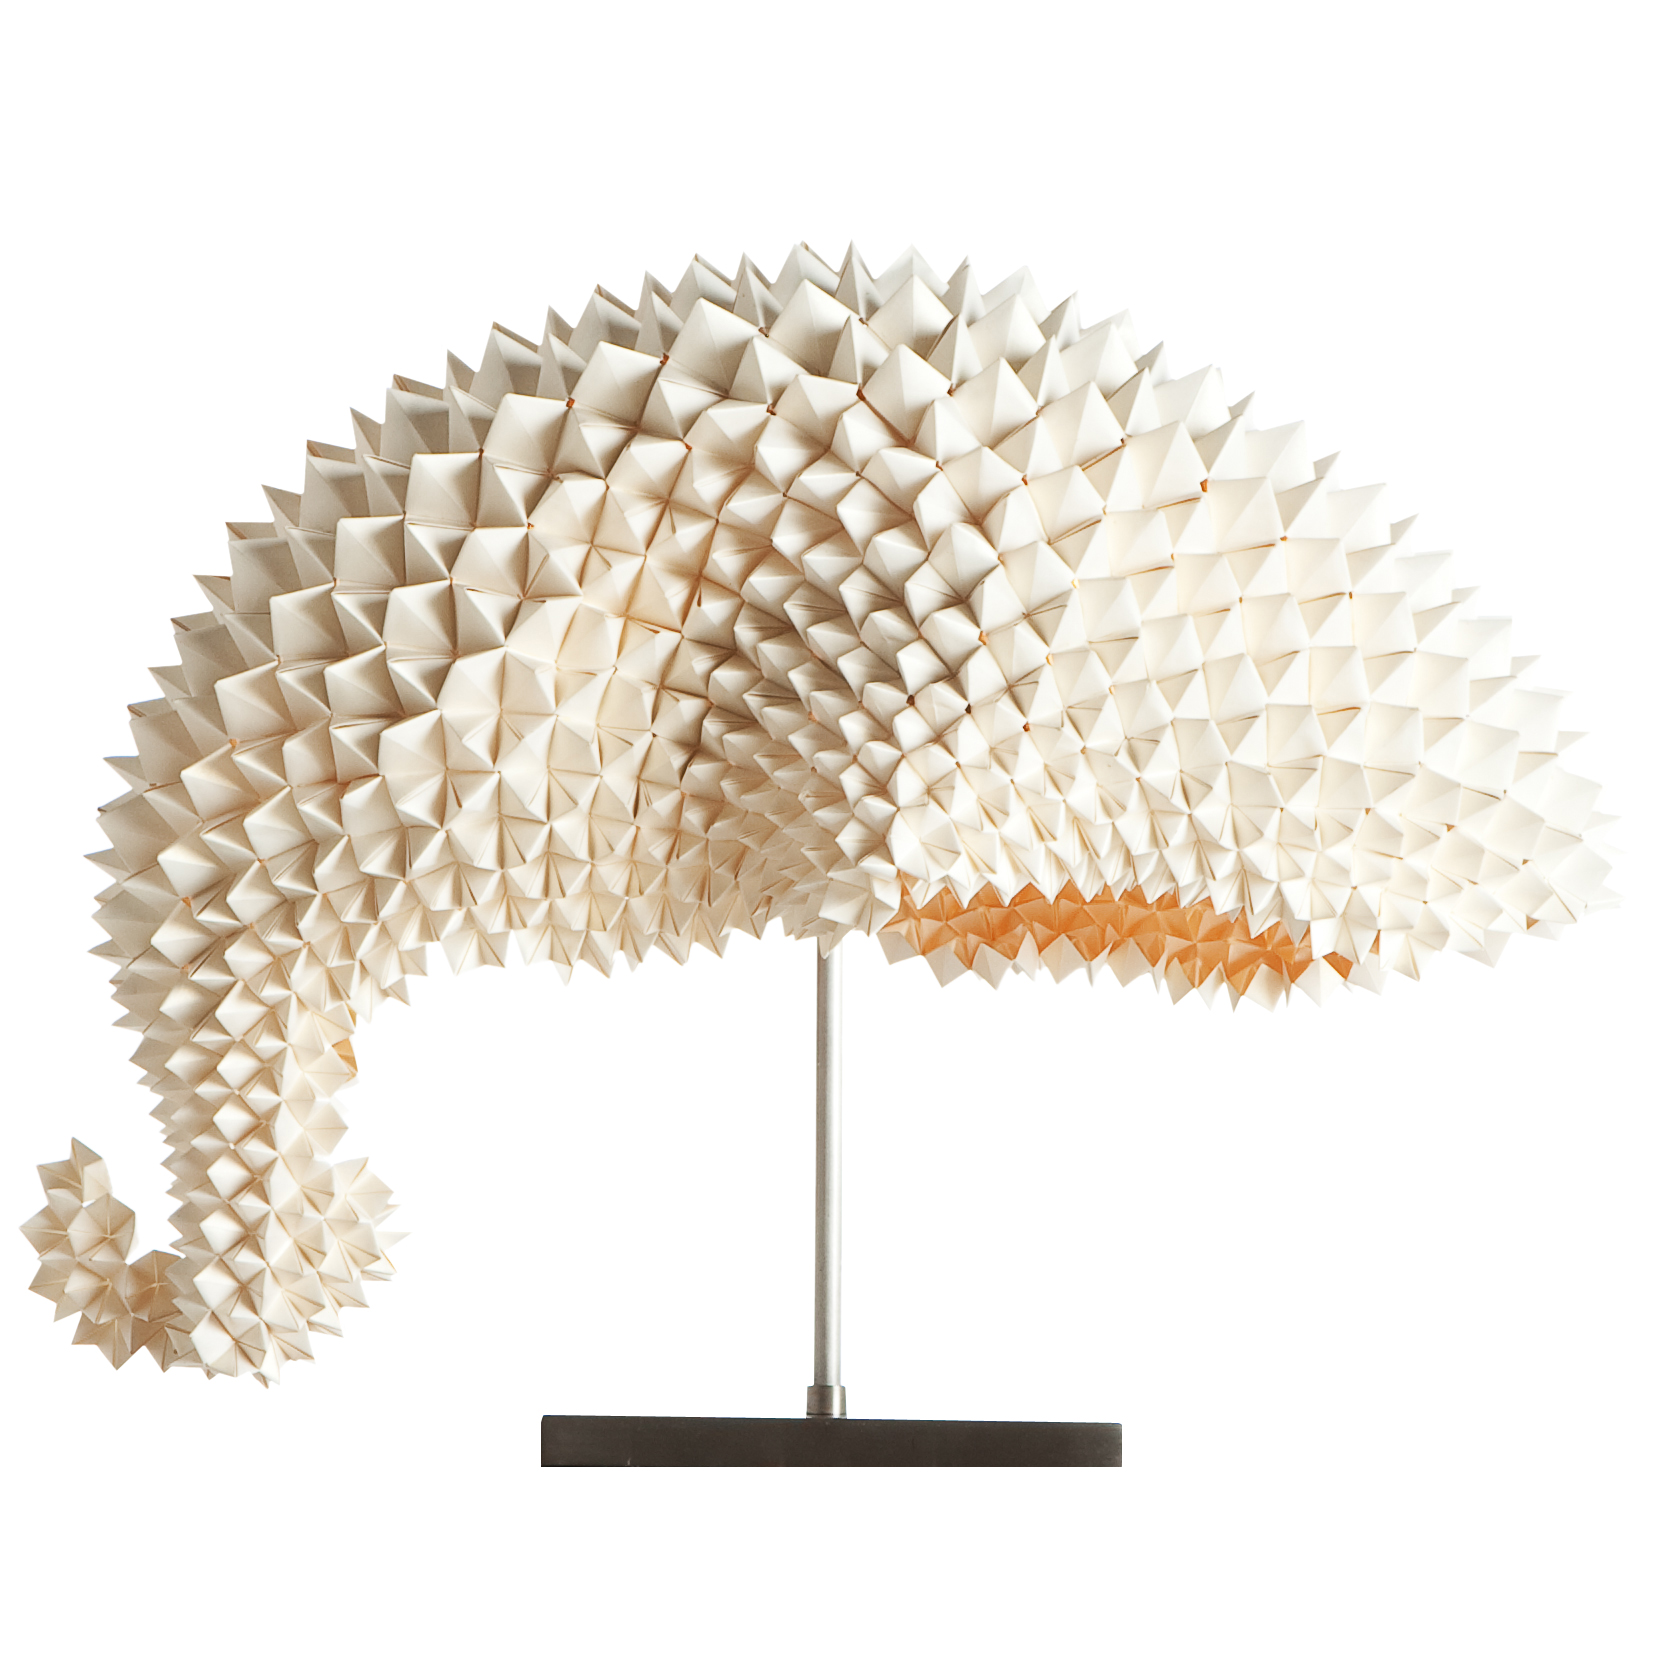 Dragonu0027s Tail Table Lamp By Hive | LTDT C 0920